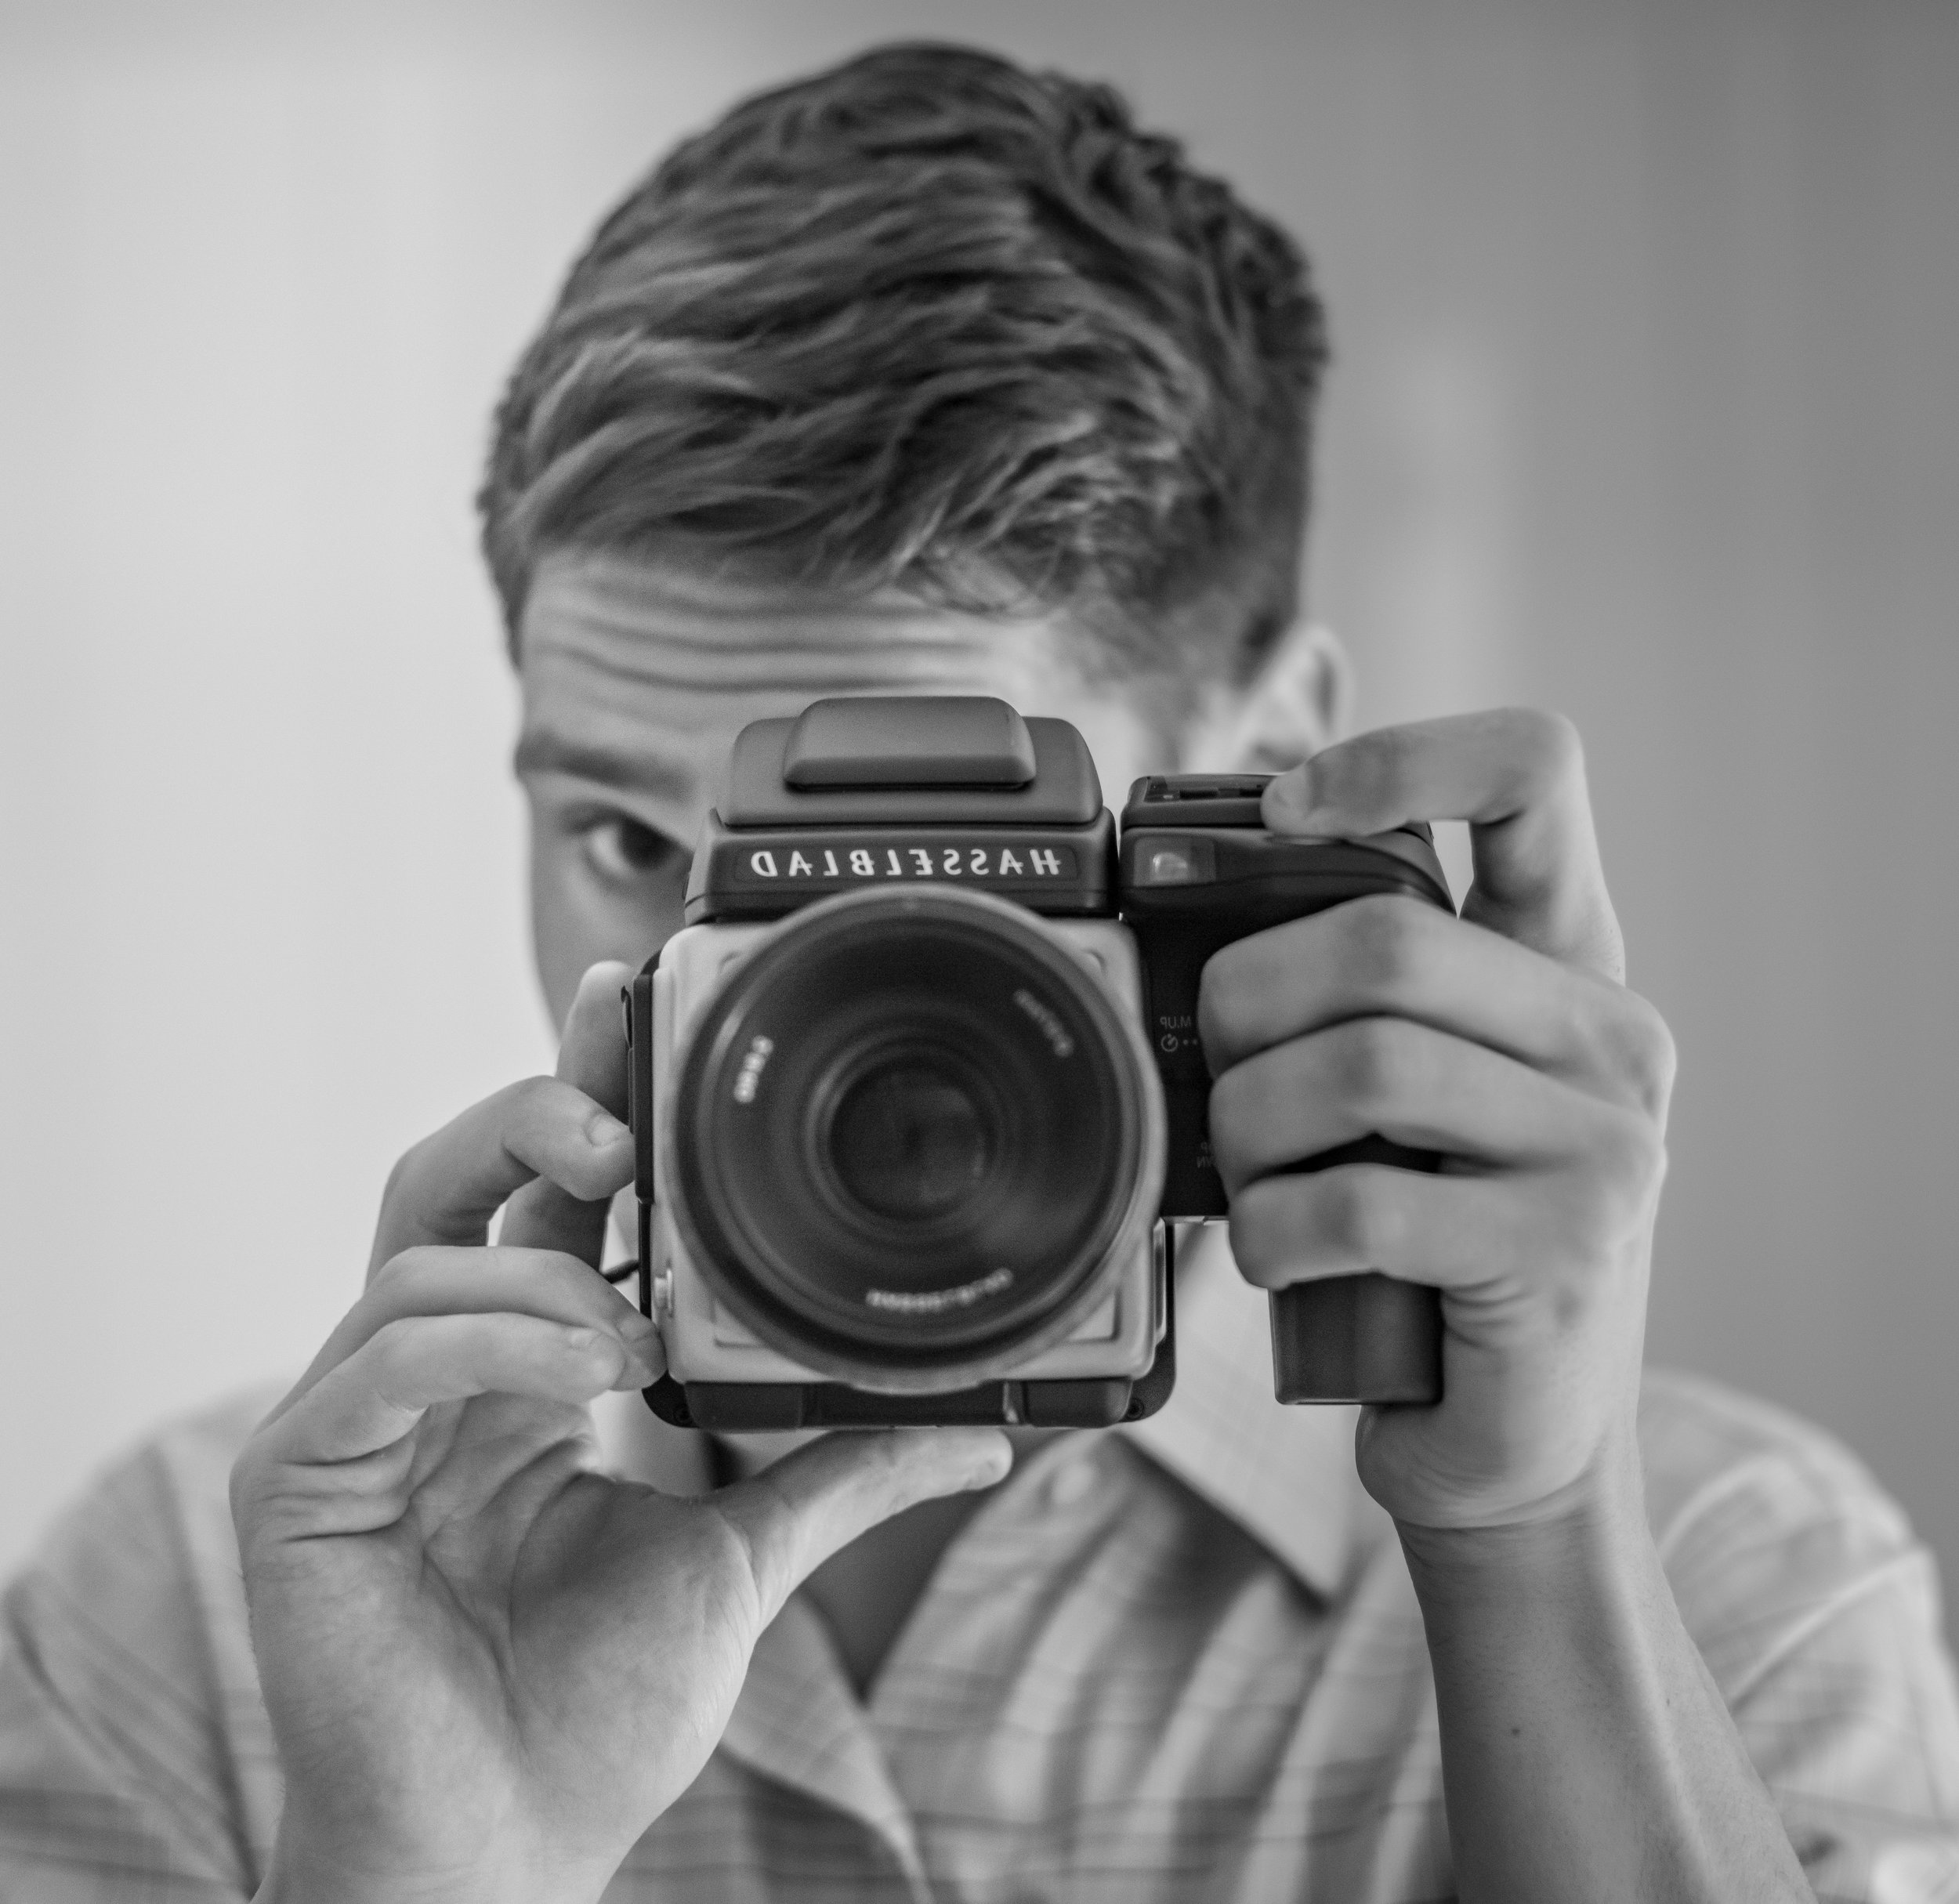 Daniel Brown is a photographer and video editor based in Los Angeles, CA. His specialization is in timelapse photography and immersive capture.